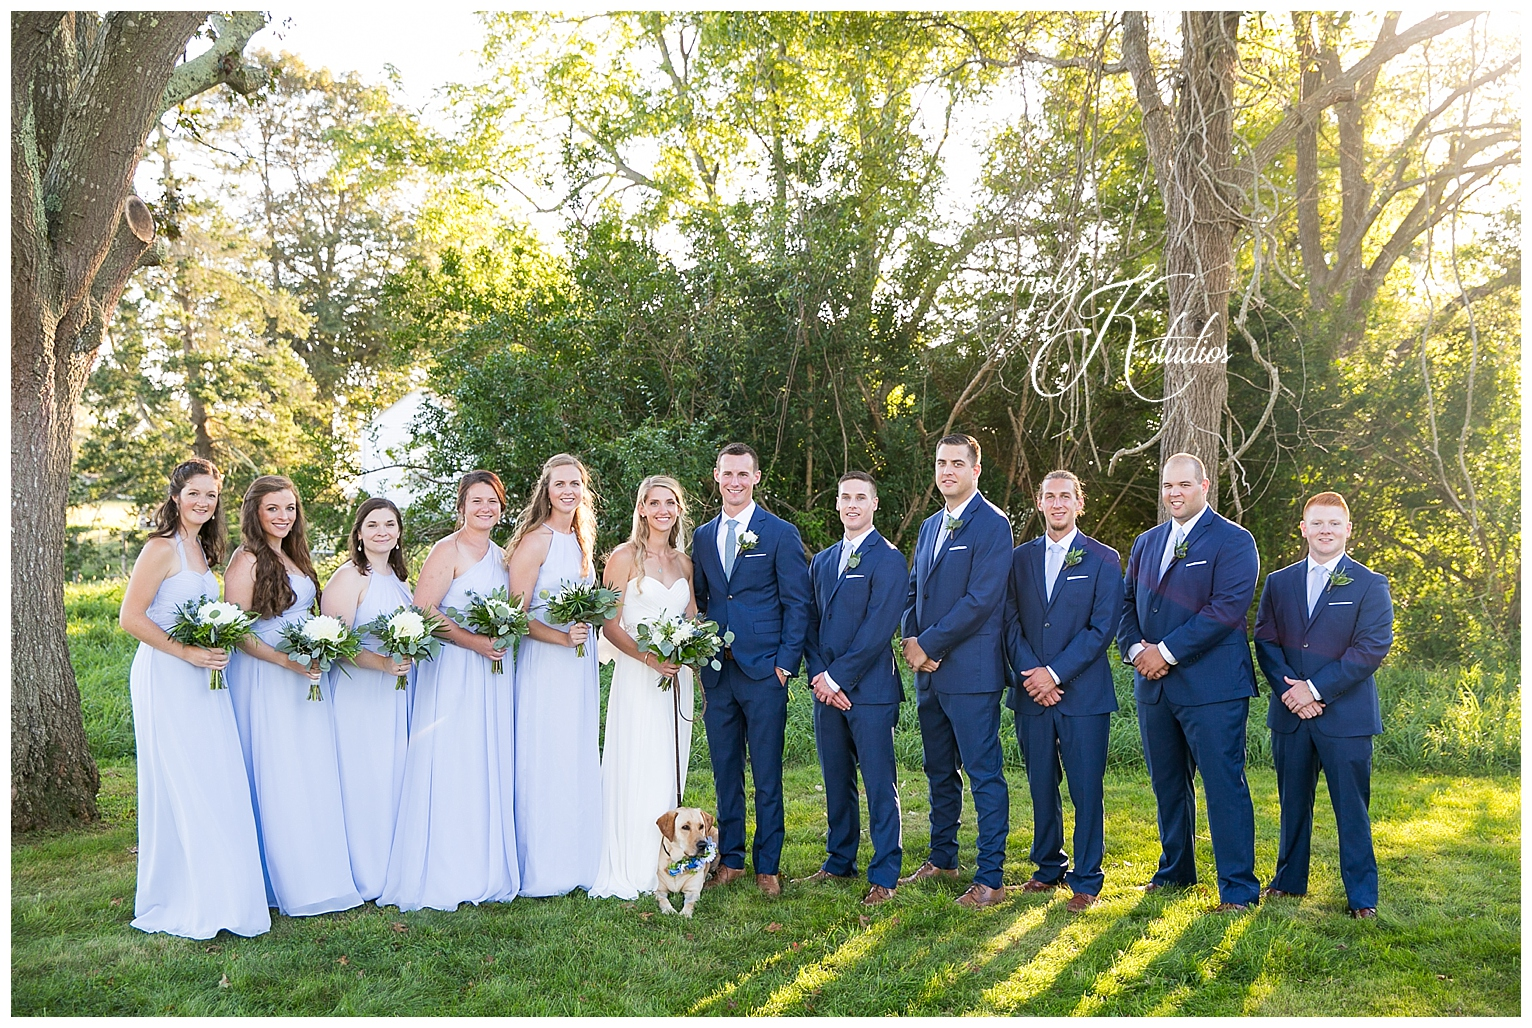 Wedding Photographers in CT.jpg